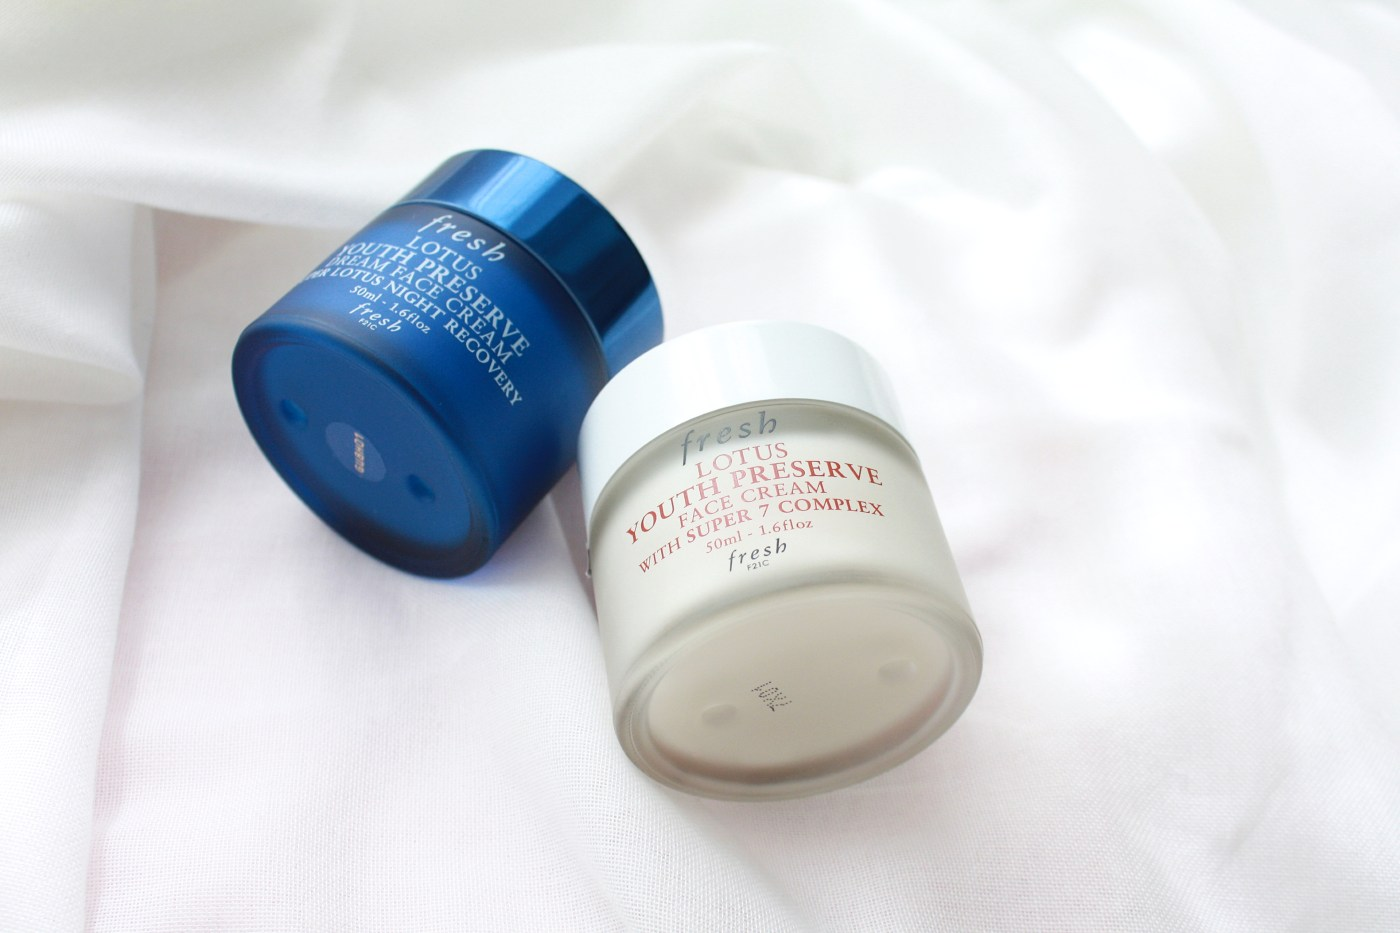 FRESH BEAUTY LOTUS YOUTH PRESERVE FACE CREAM AND DREAM NIGHT CREAM